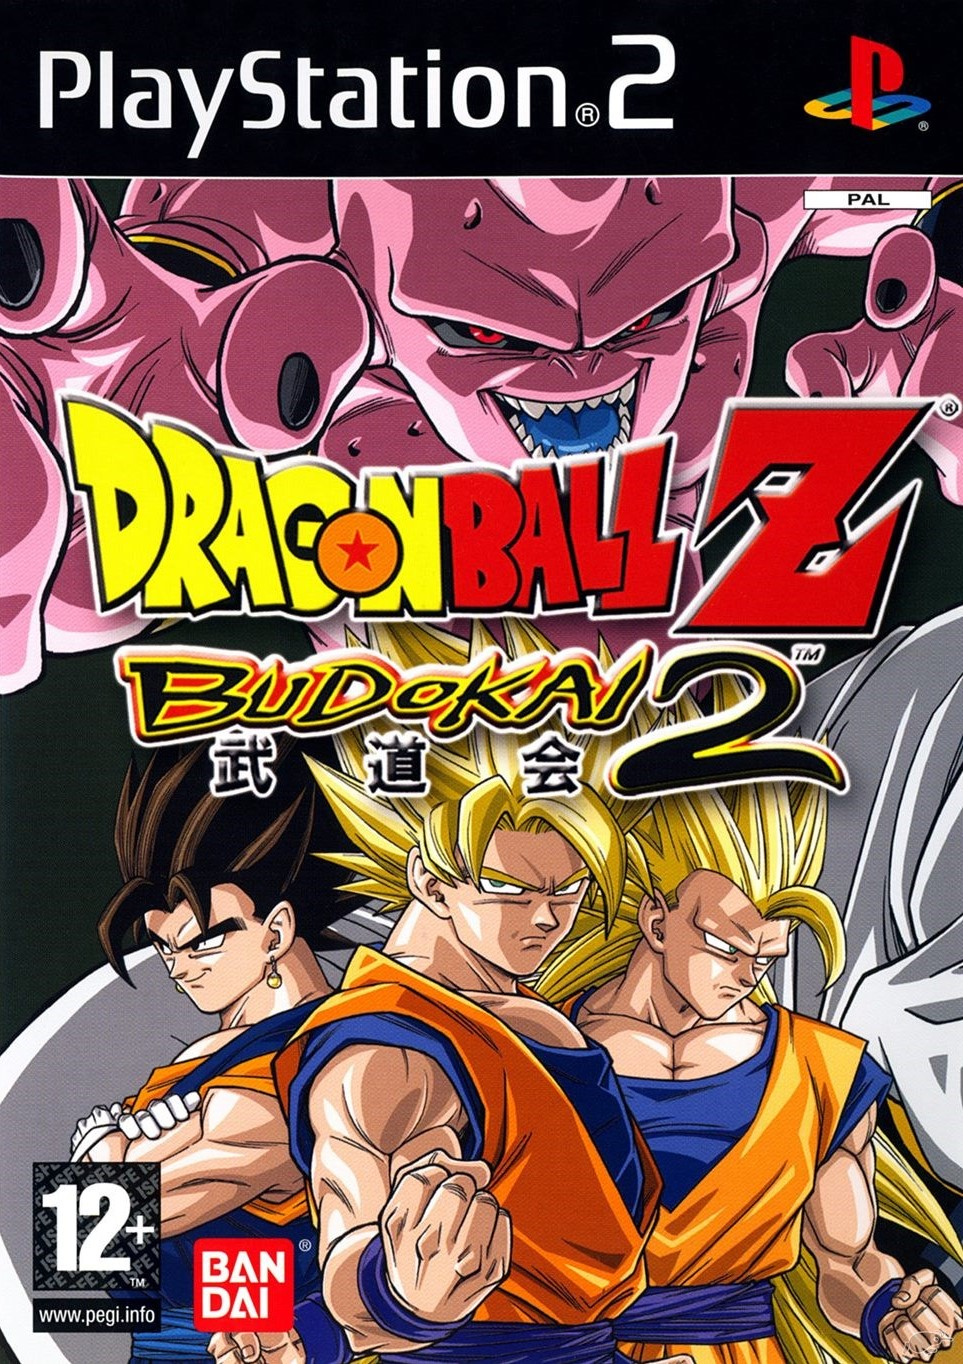 Dragon Ball Z Budokai 2 - PlayStation 2 Játékok